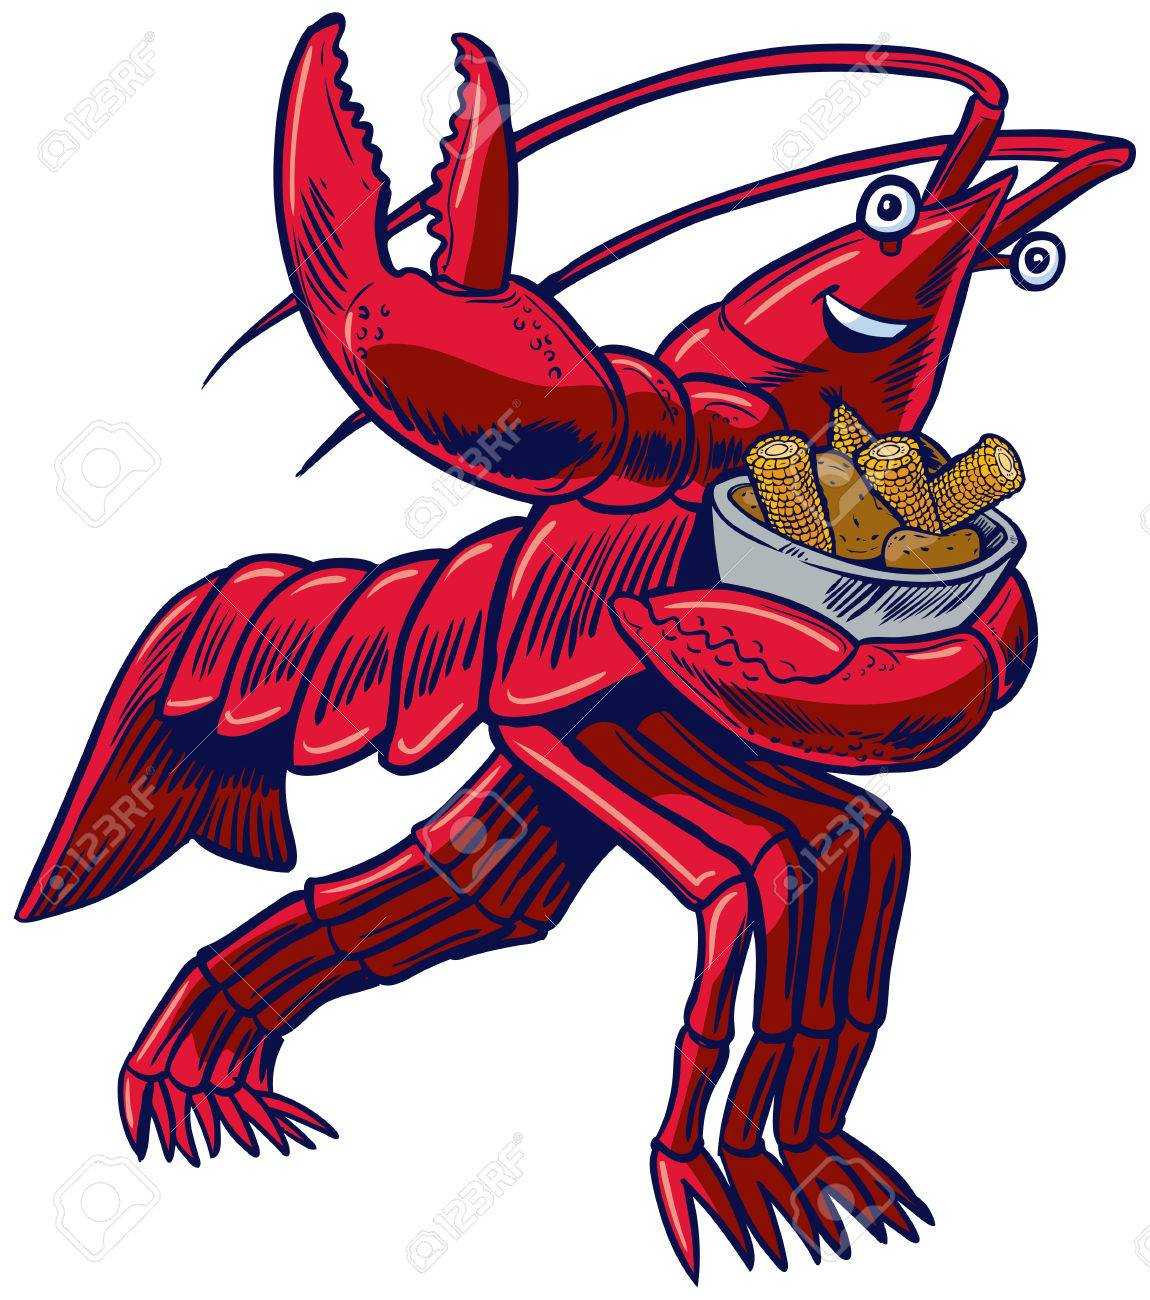 hight resolution of vector cartoon clip art illustration of a crayfish crawfish crawdad or lobster in